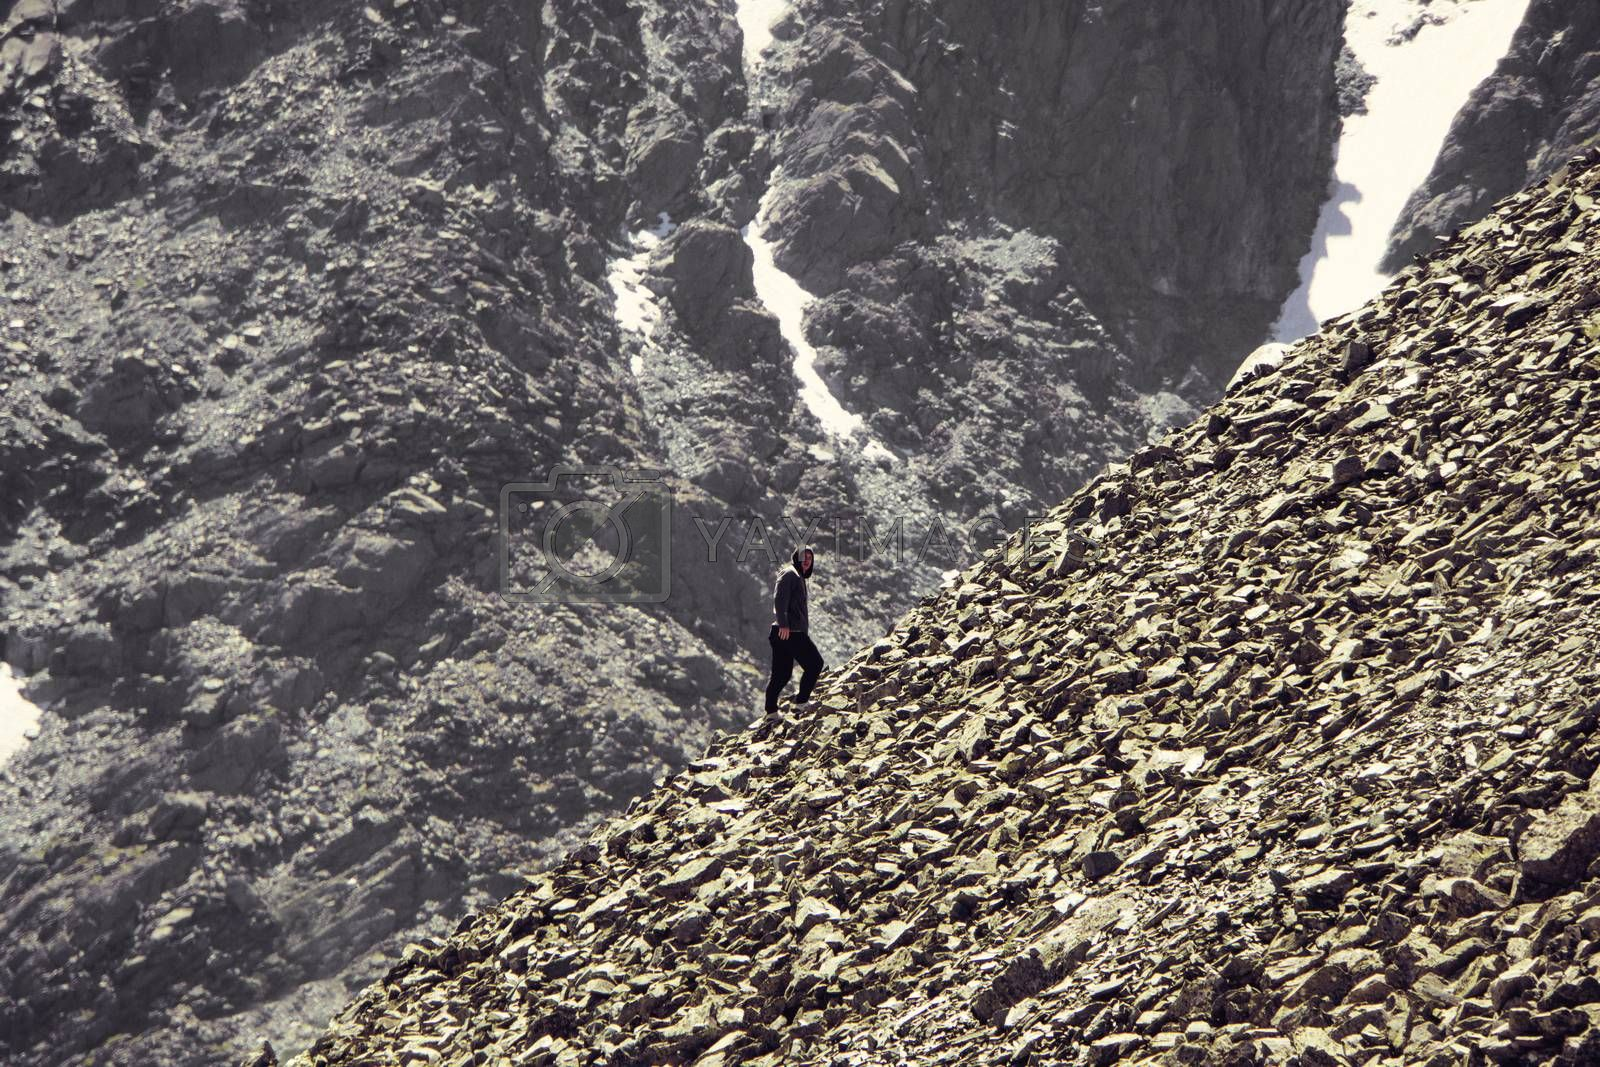 Royalty free image of man climbing steep mountain. Good image for adventure, struggle and success story photo. by diy13